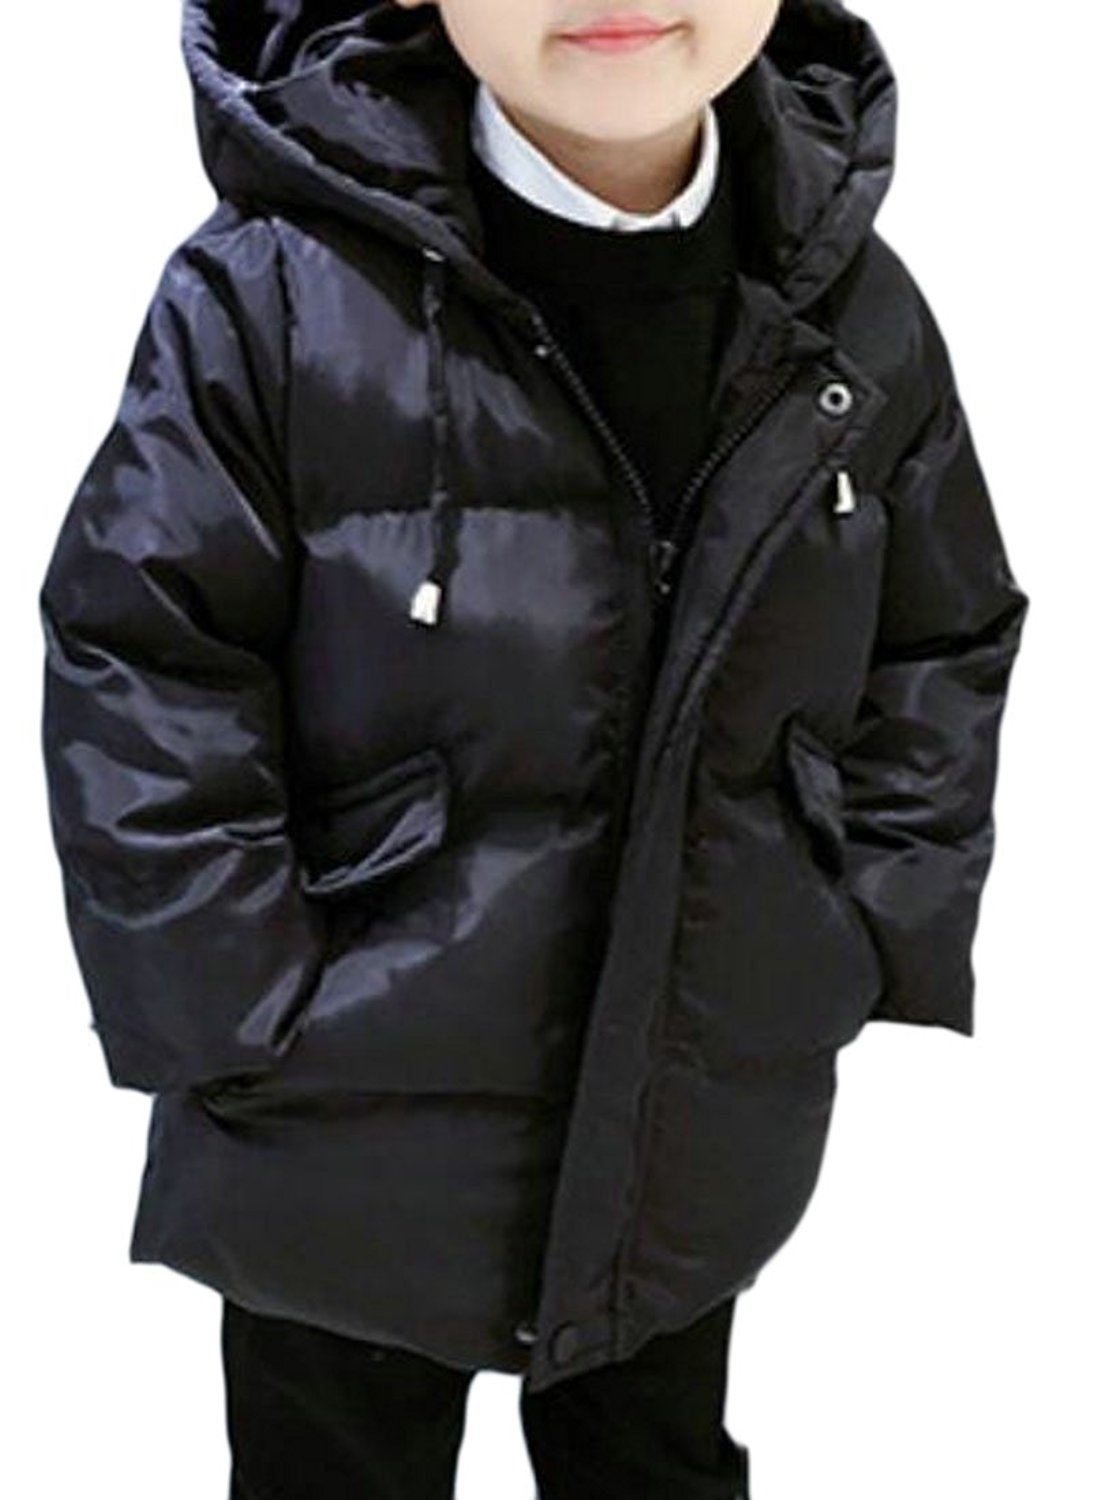 30c6c1d34a3d Cheap Puffer Jackets For Boys